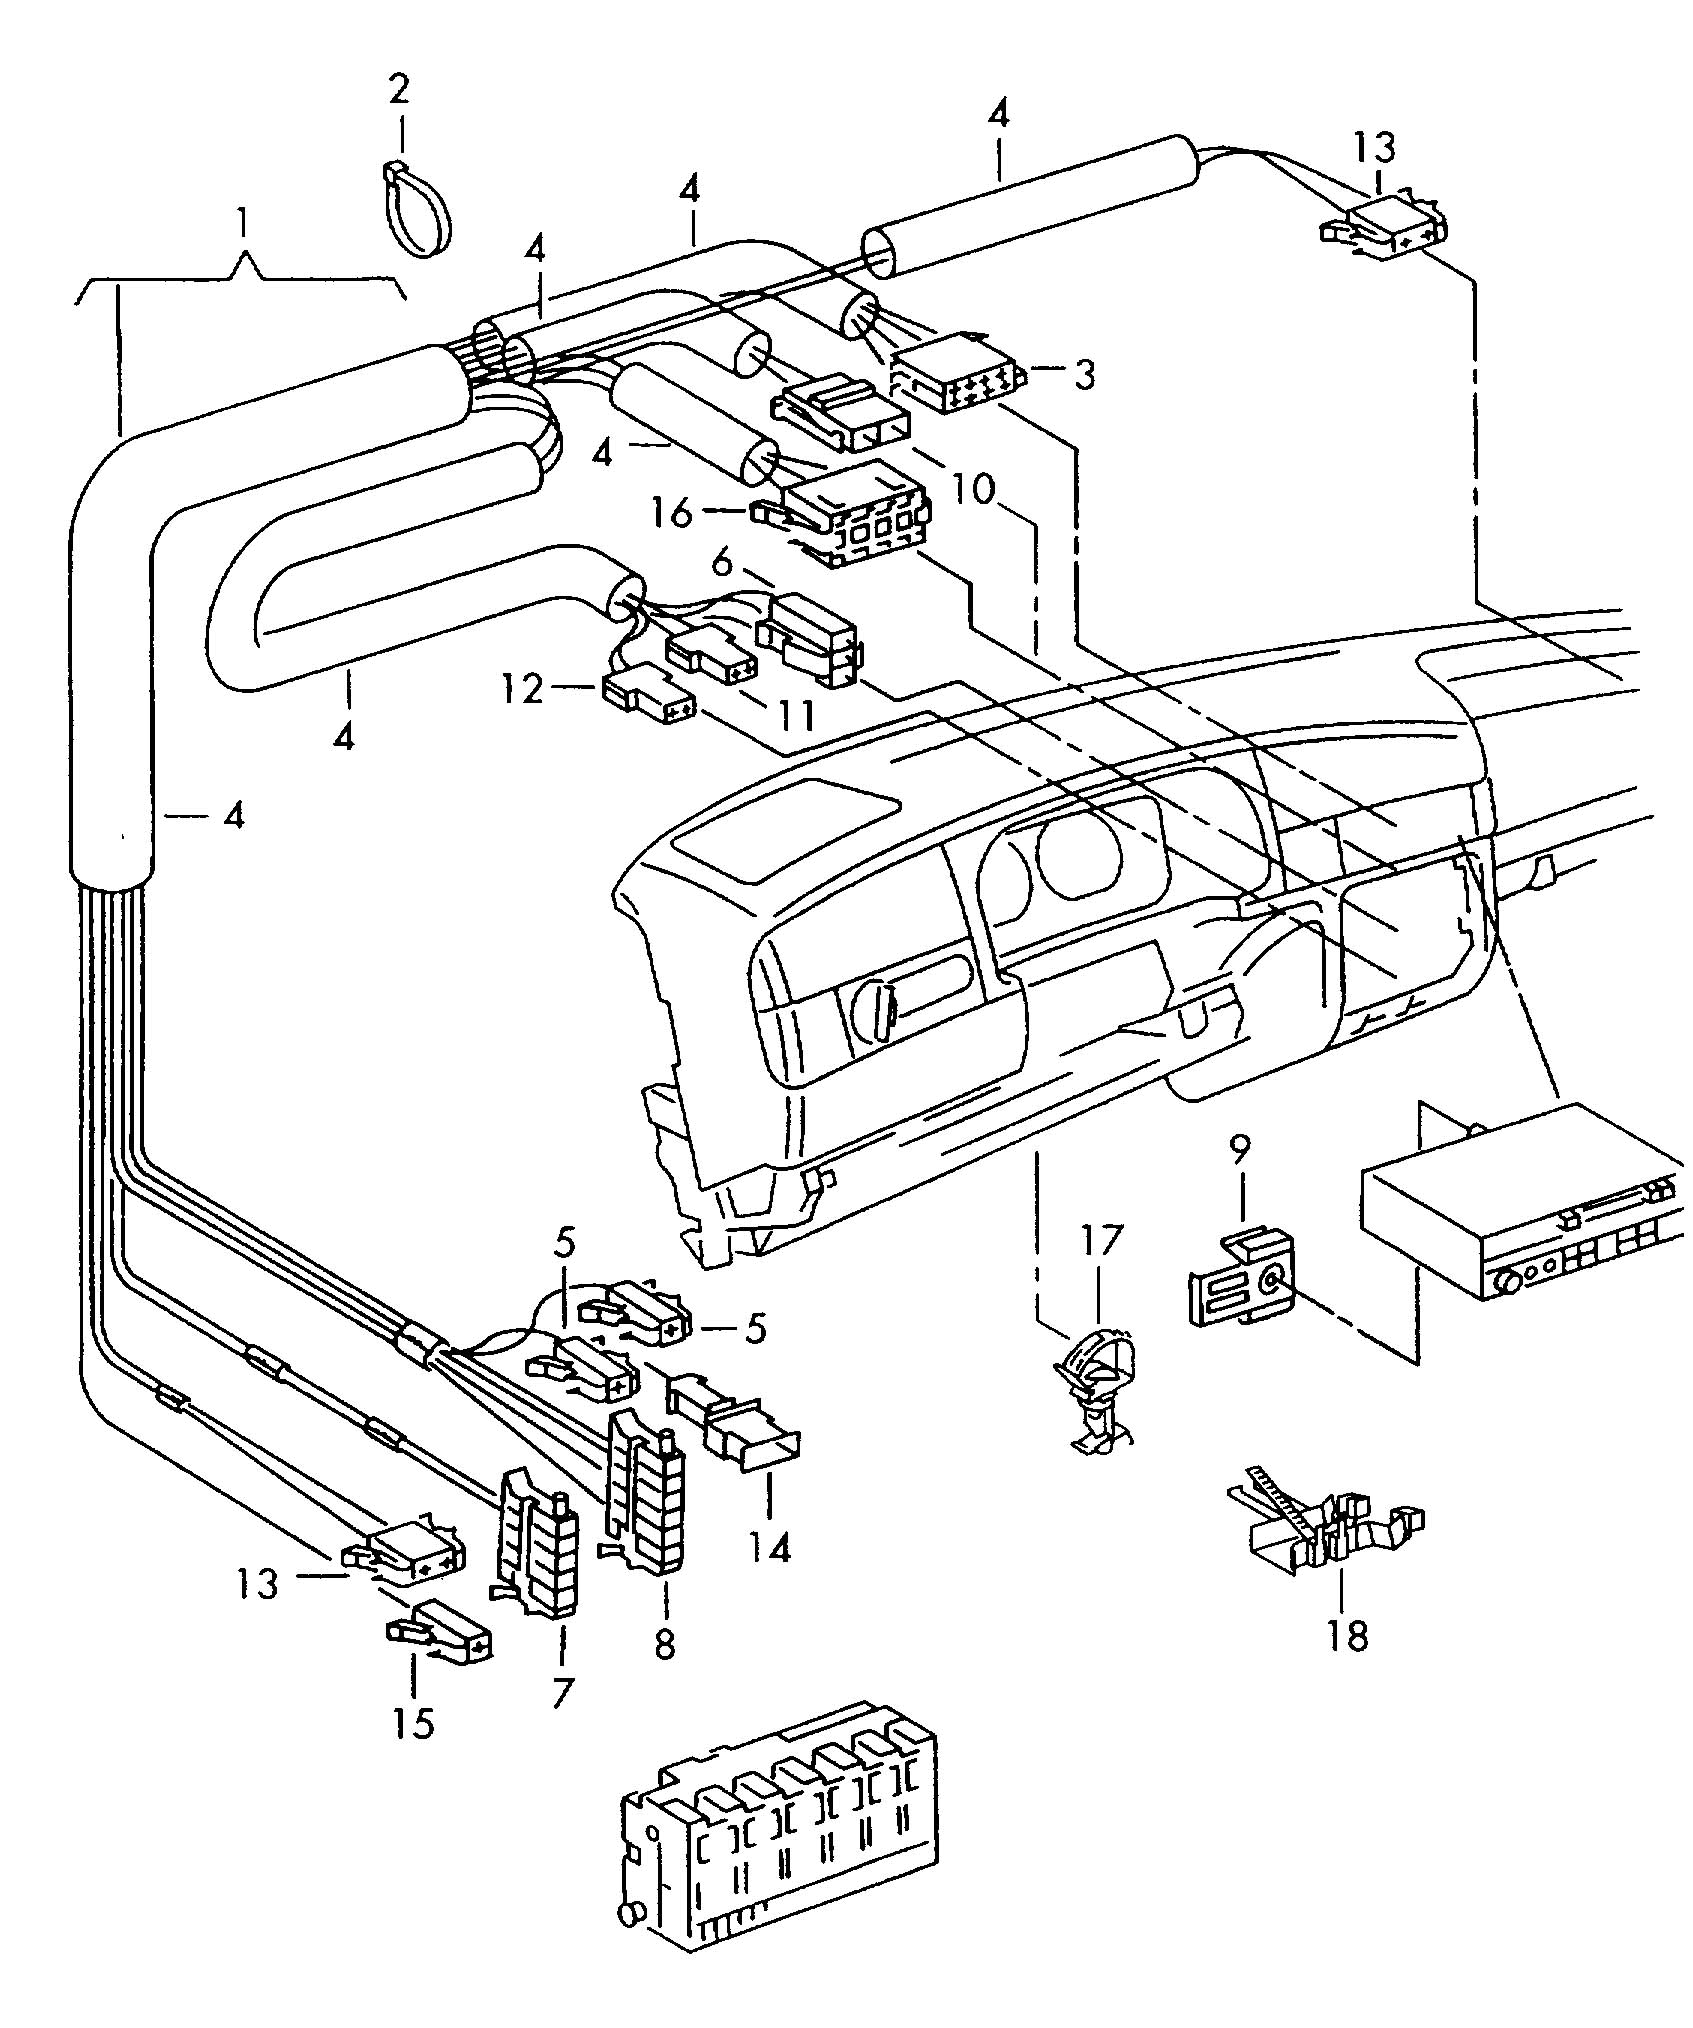 hight resolution of 1970 volkswagen beetle wiring diagram engine diagram and